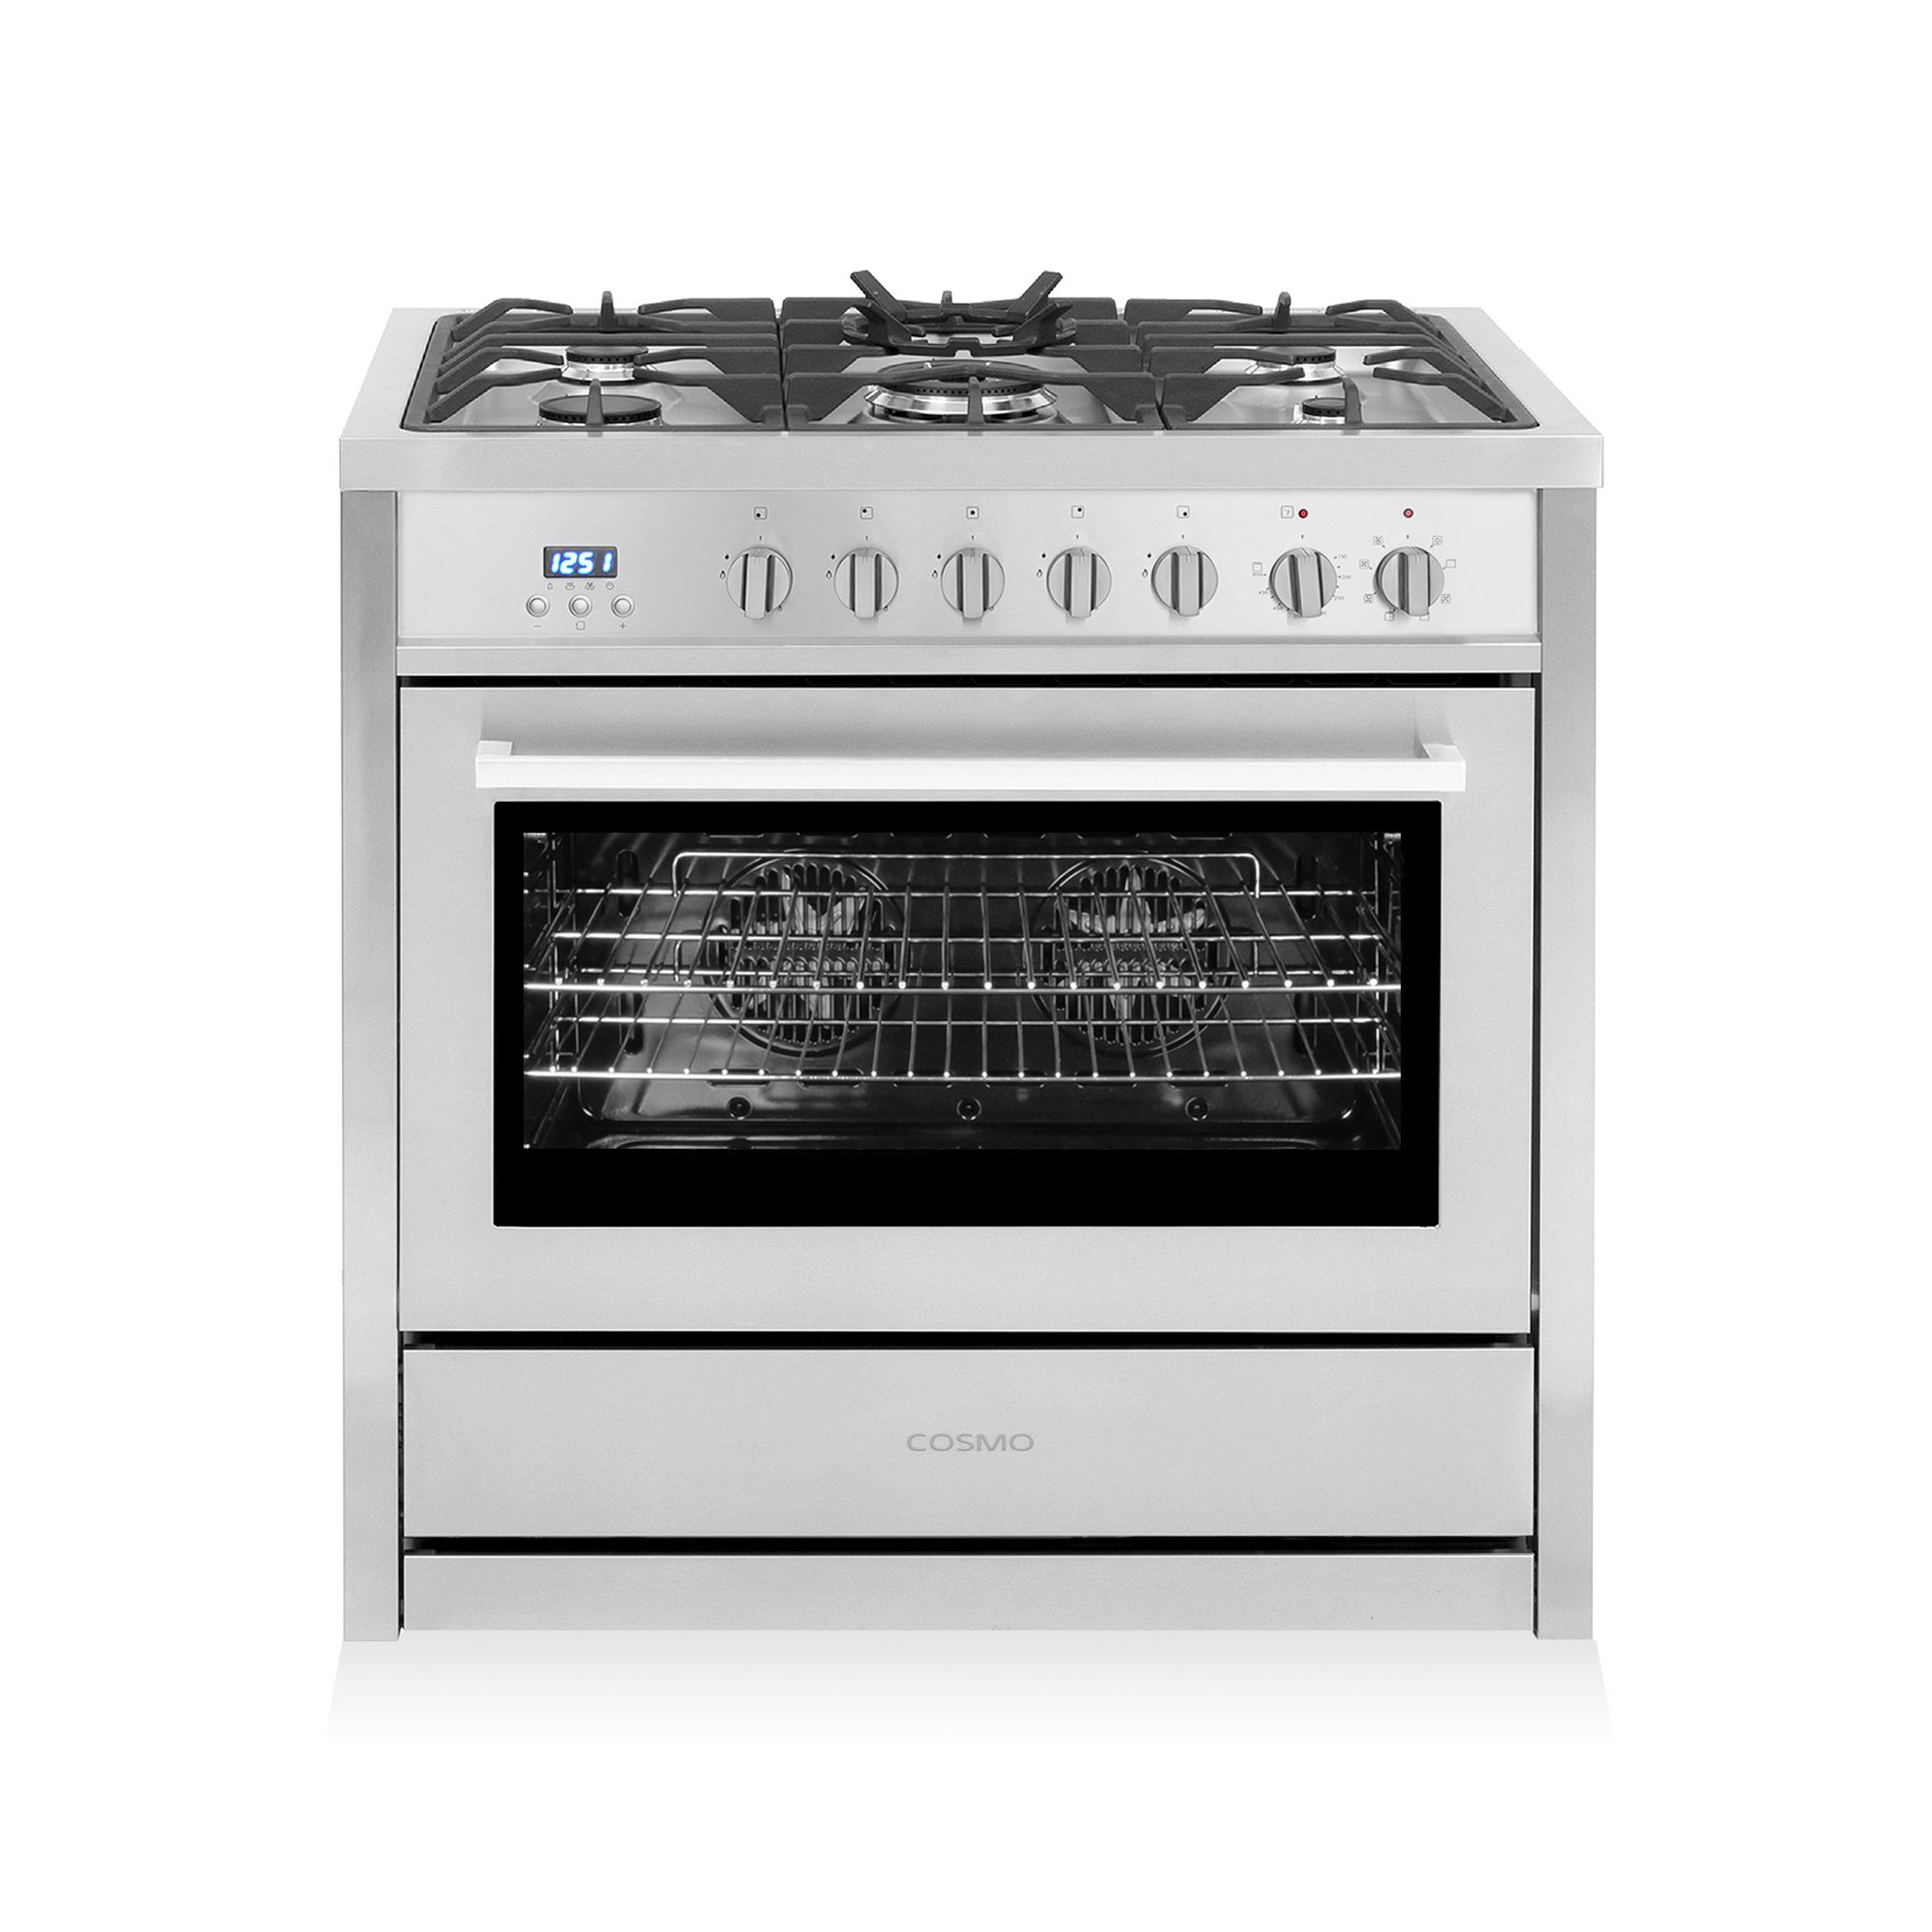 Professional Style Dual Fuel Range With 3 8 Cu Ft Electric Oven Turbo True European Convection 5 High Performance Gas Burners Cast Iron Grates